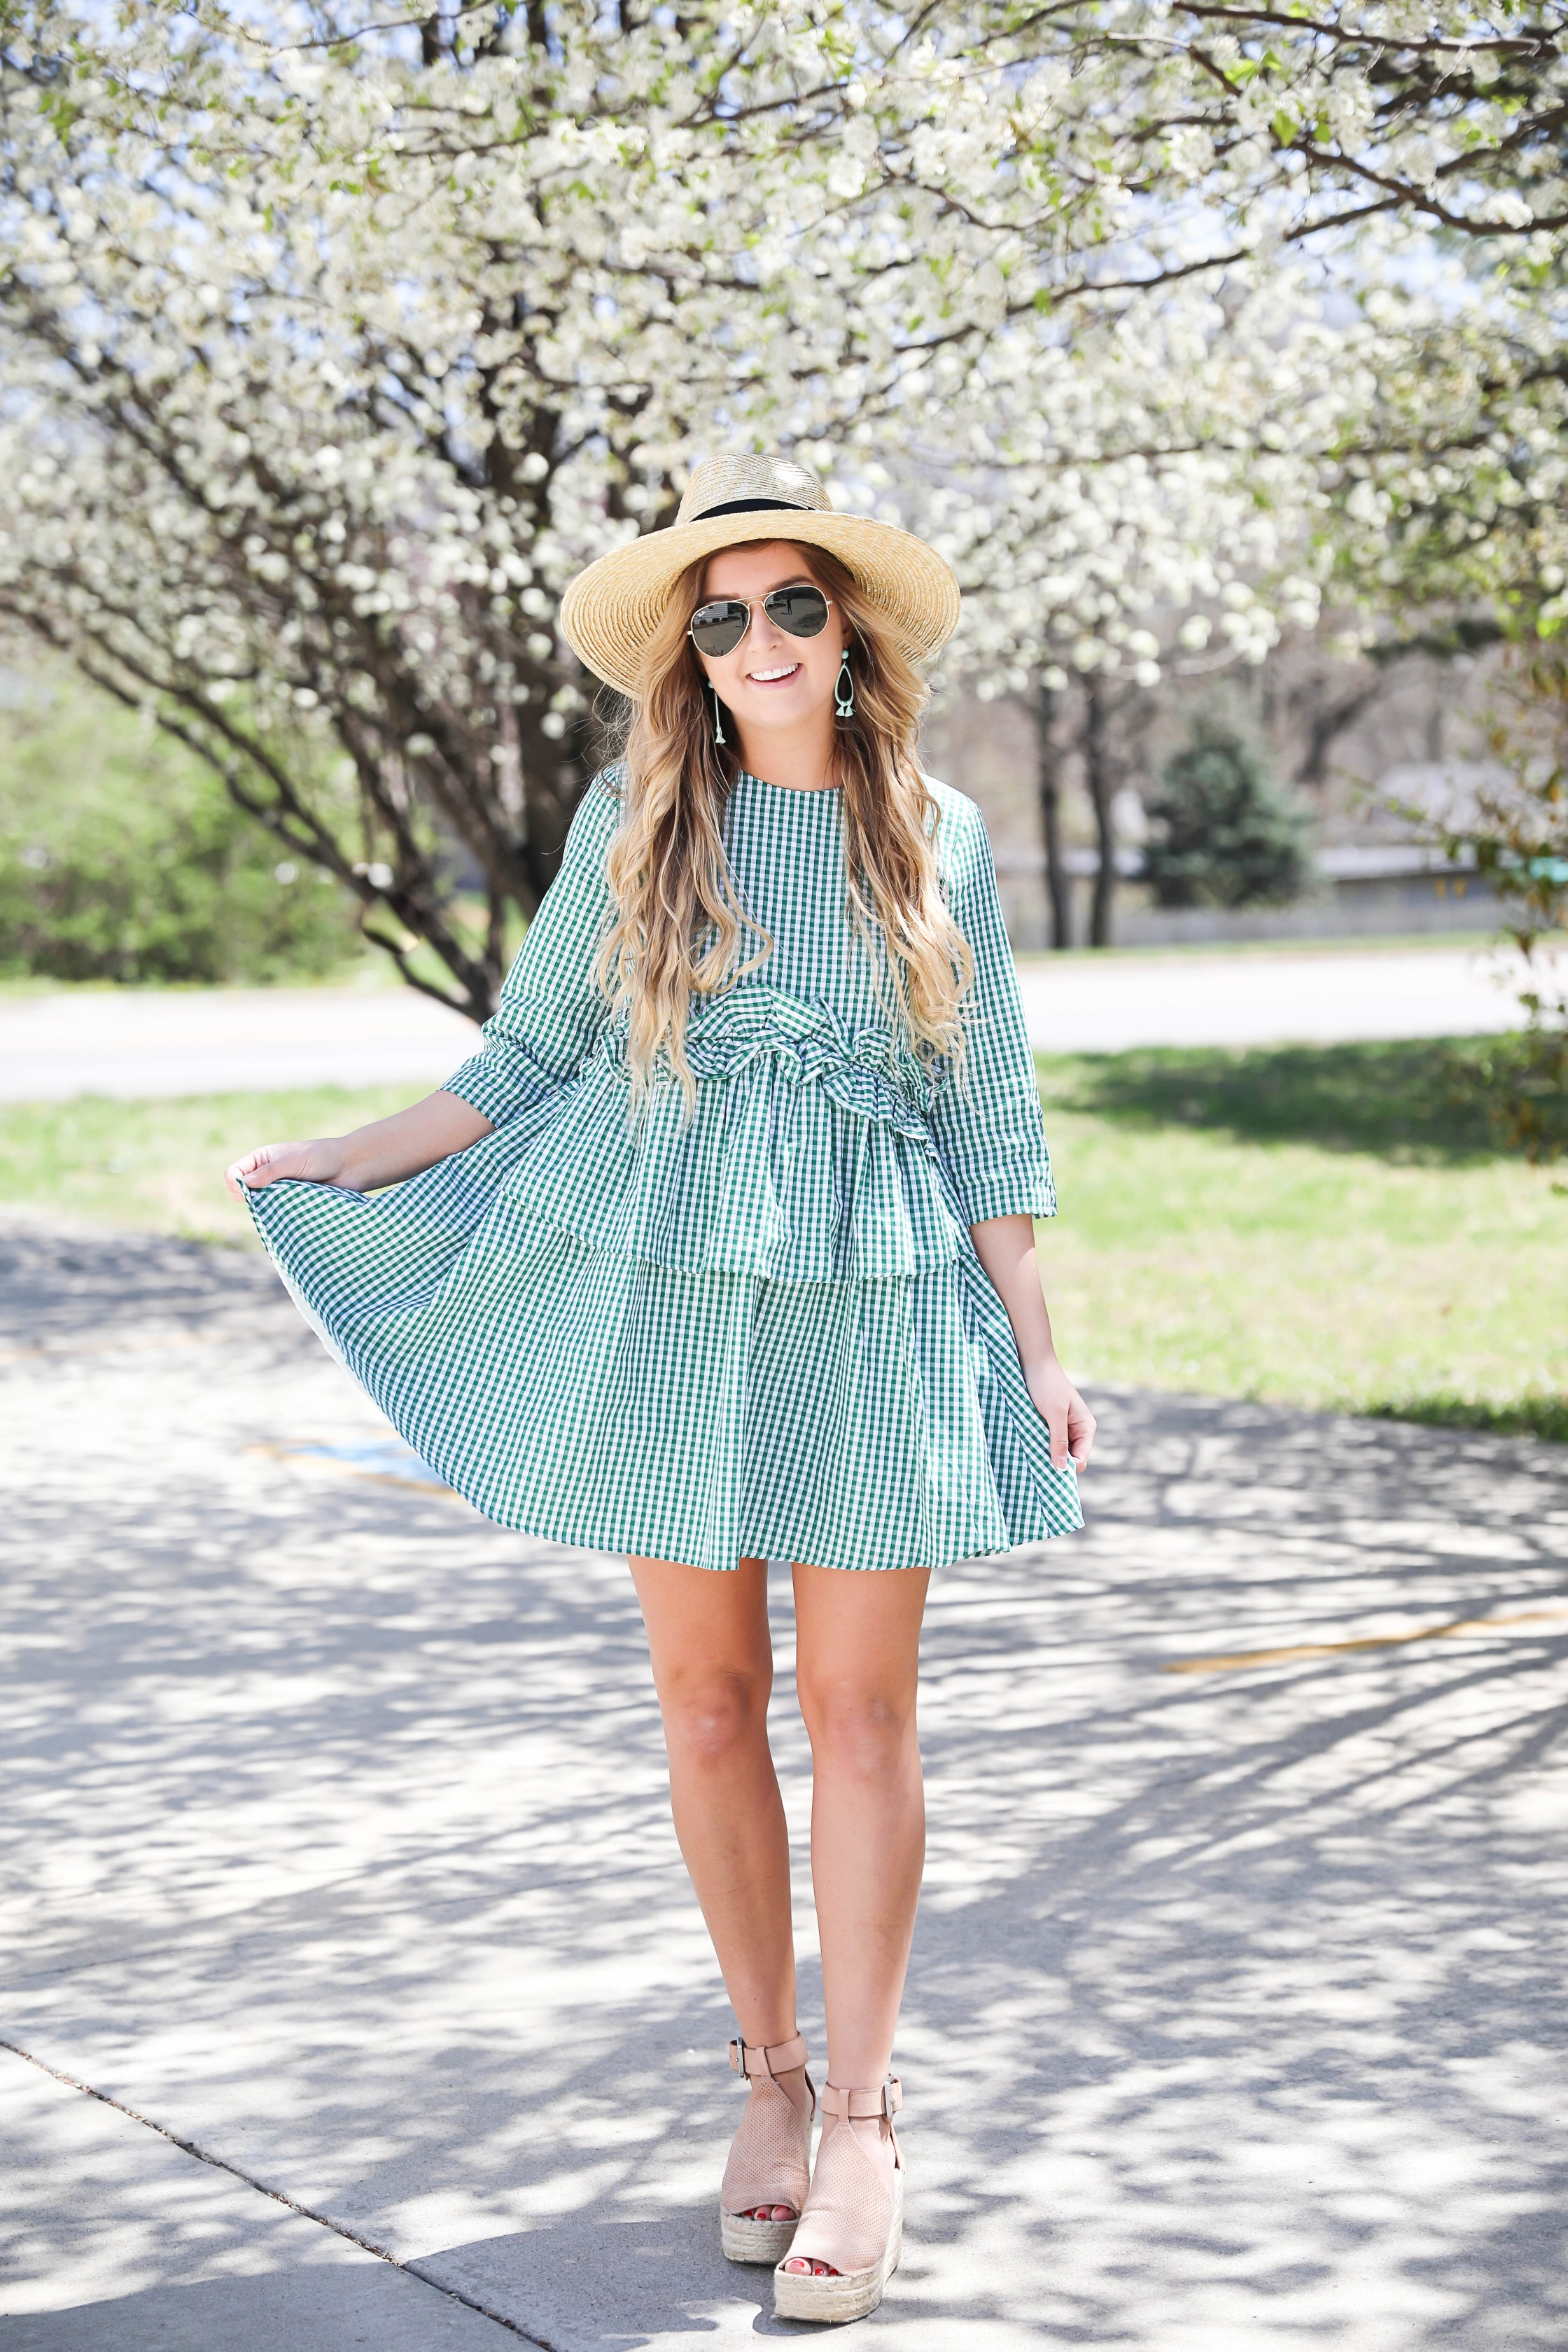 Green gingham dress perfect for spring days or days on the beach! I paired it with a straw hat and blue earrings! The most beautiful spring blooming trees were in the background making this spring fashion look perfection! Details on fashion blog daily dose of charm by lauren lindmark